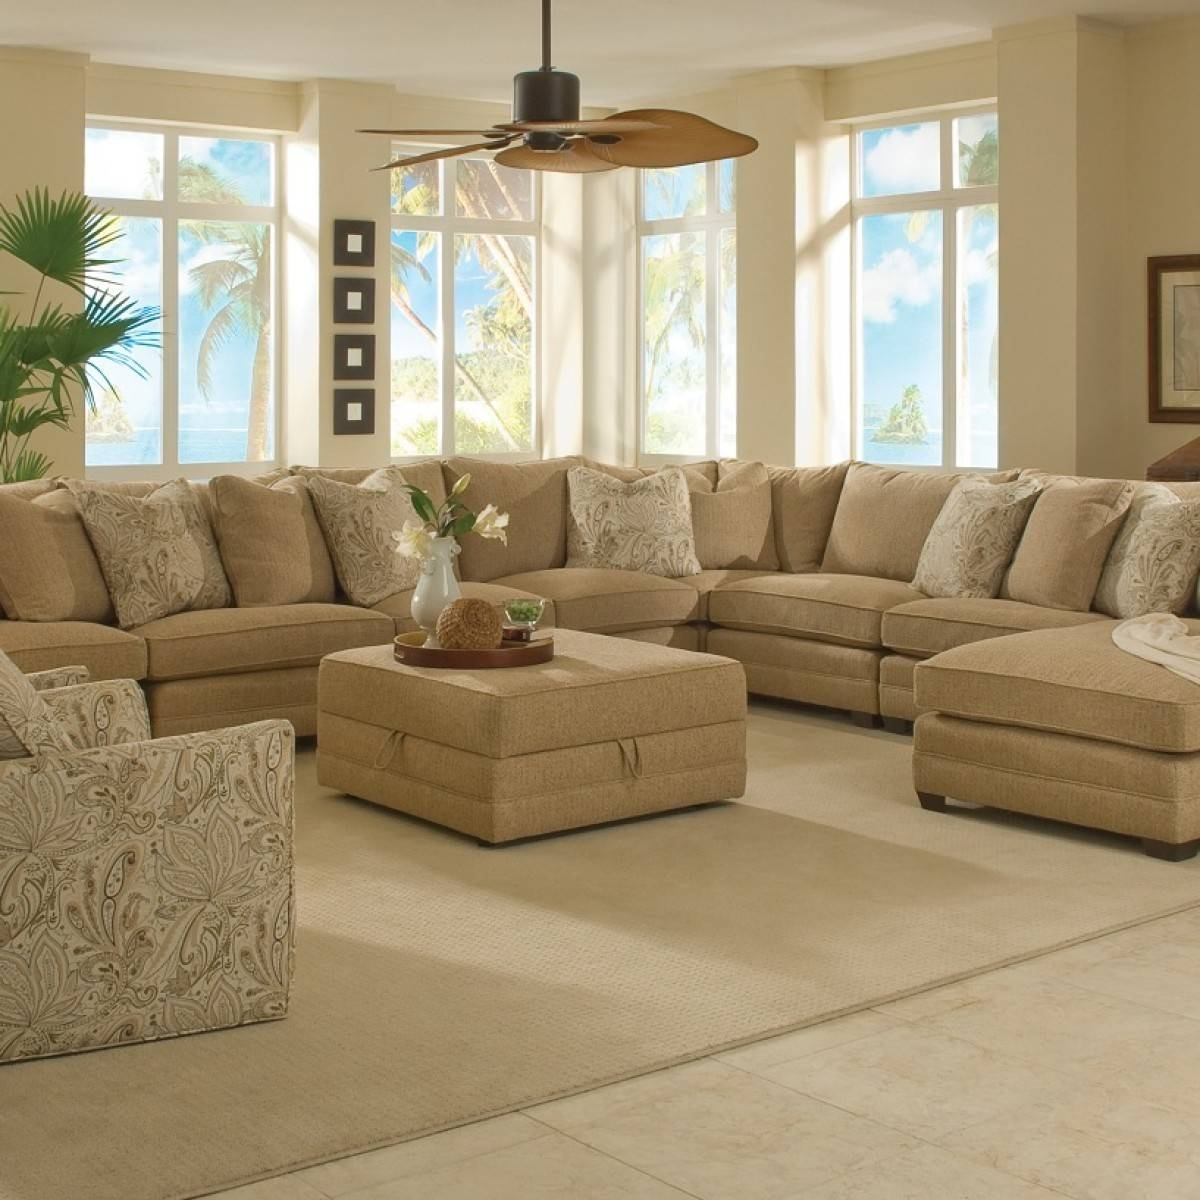 Furniture: Nice Extra Large Sectional Sofa For Large Living Room Within Sectional Sofa With Large Ottoman (Photo 8 of 30)